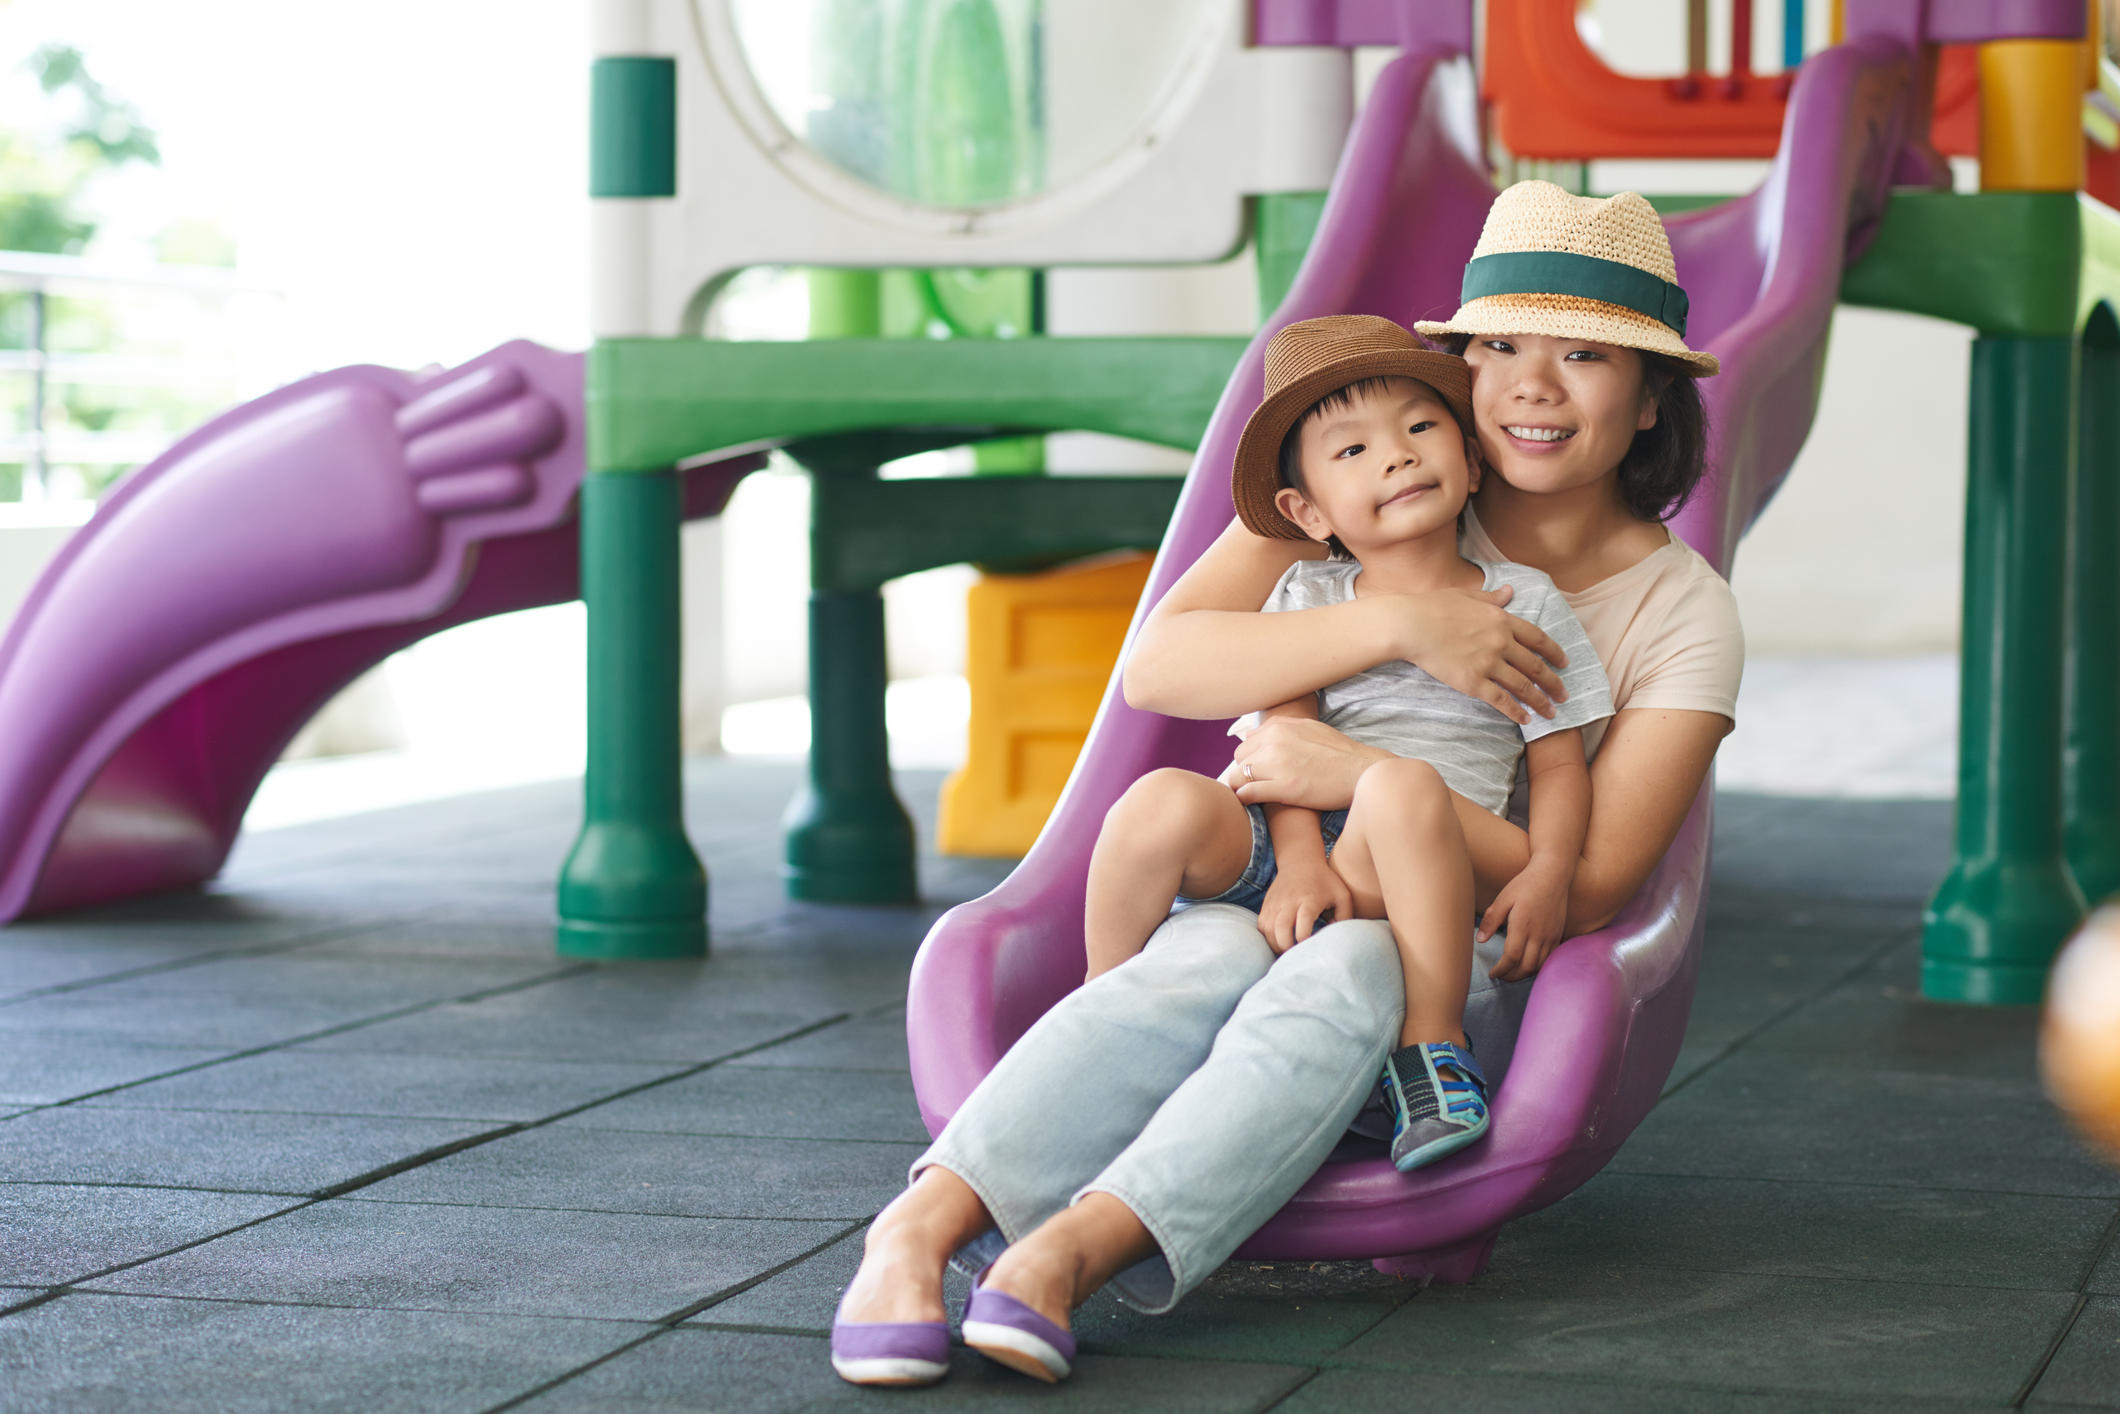 mom sliding down the slide with kid